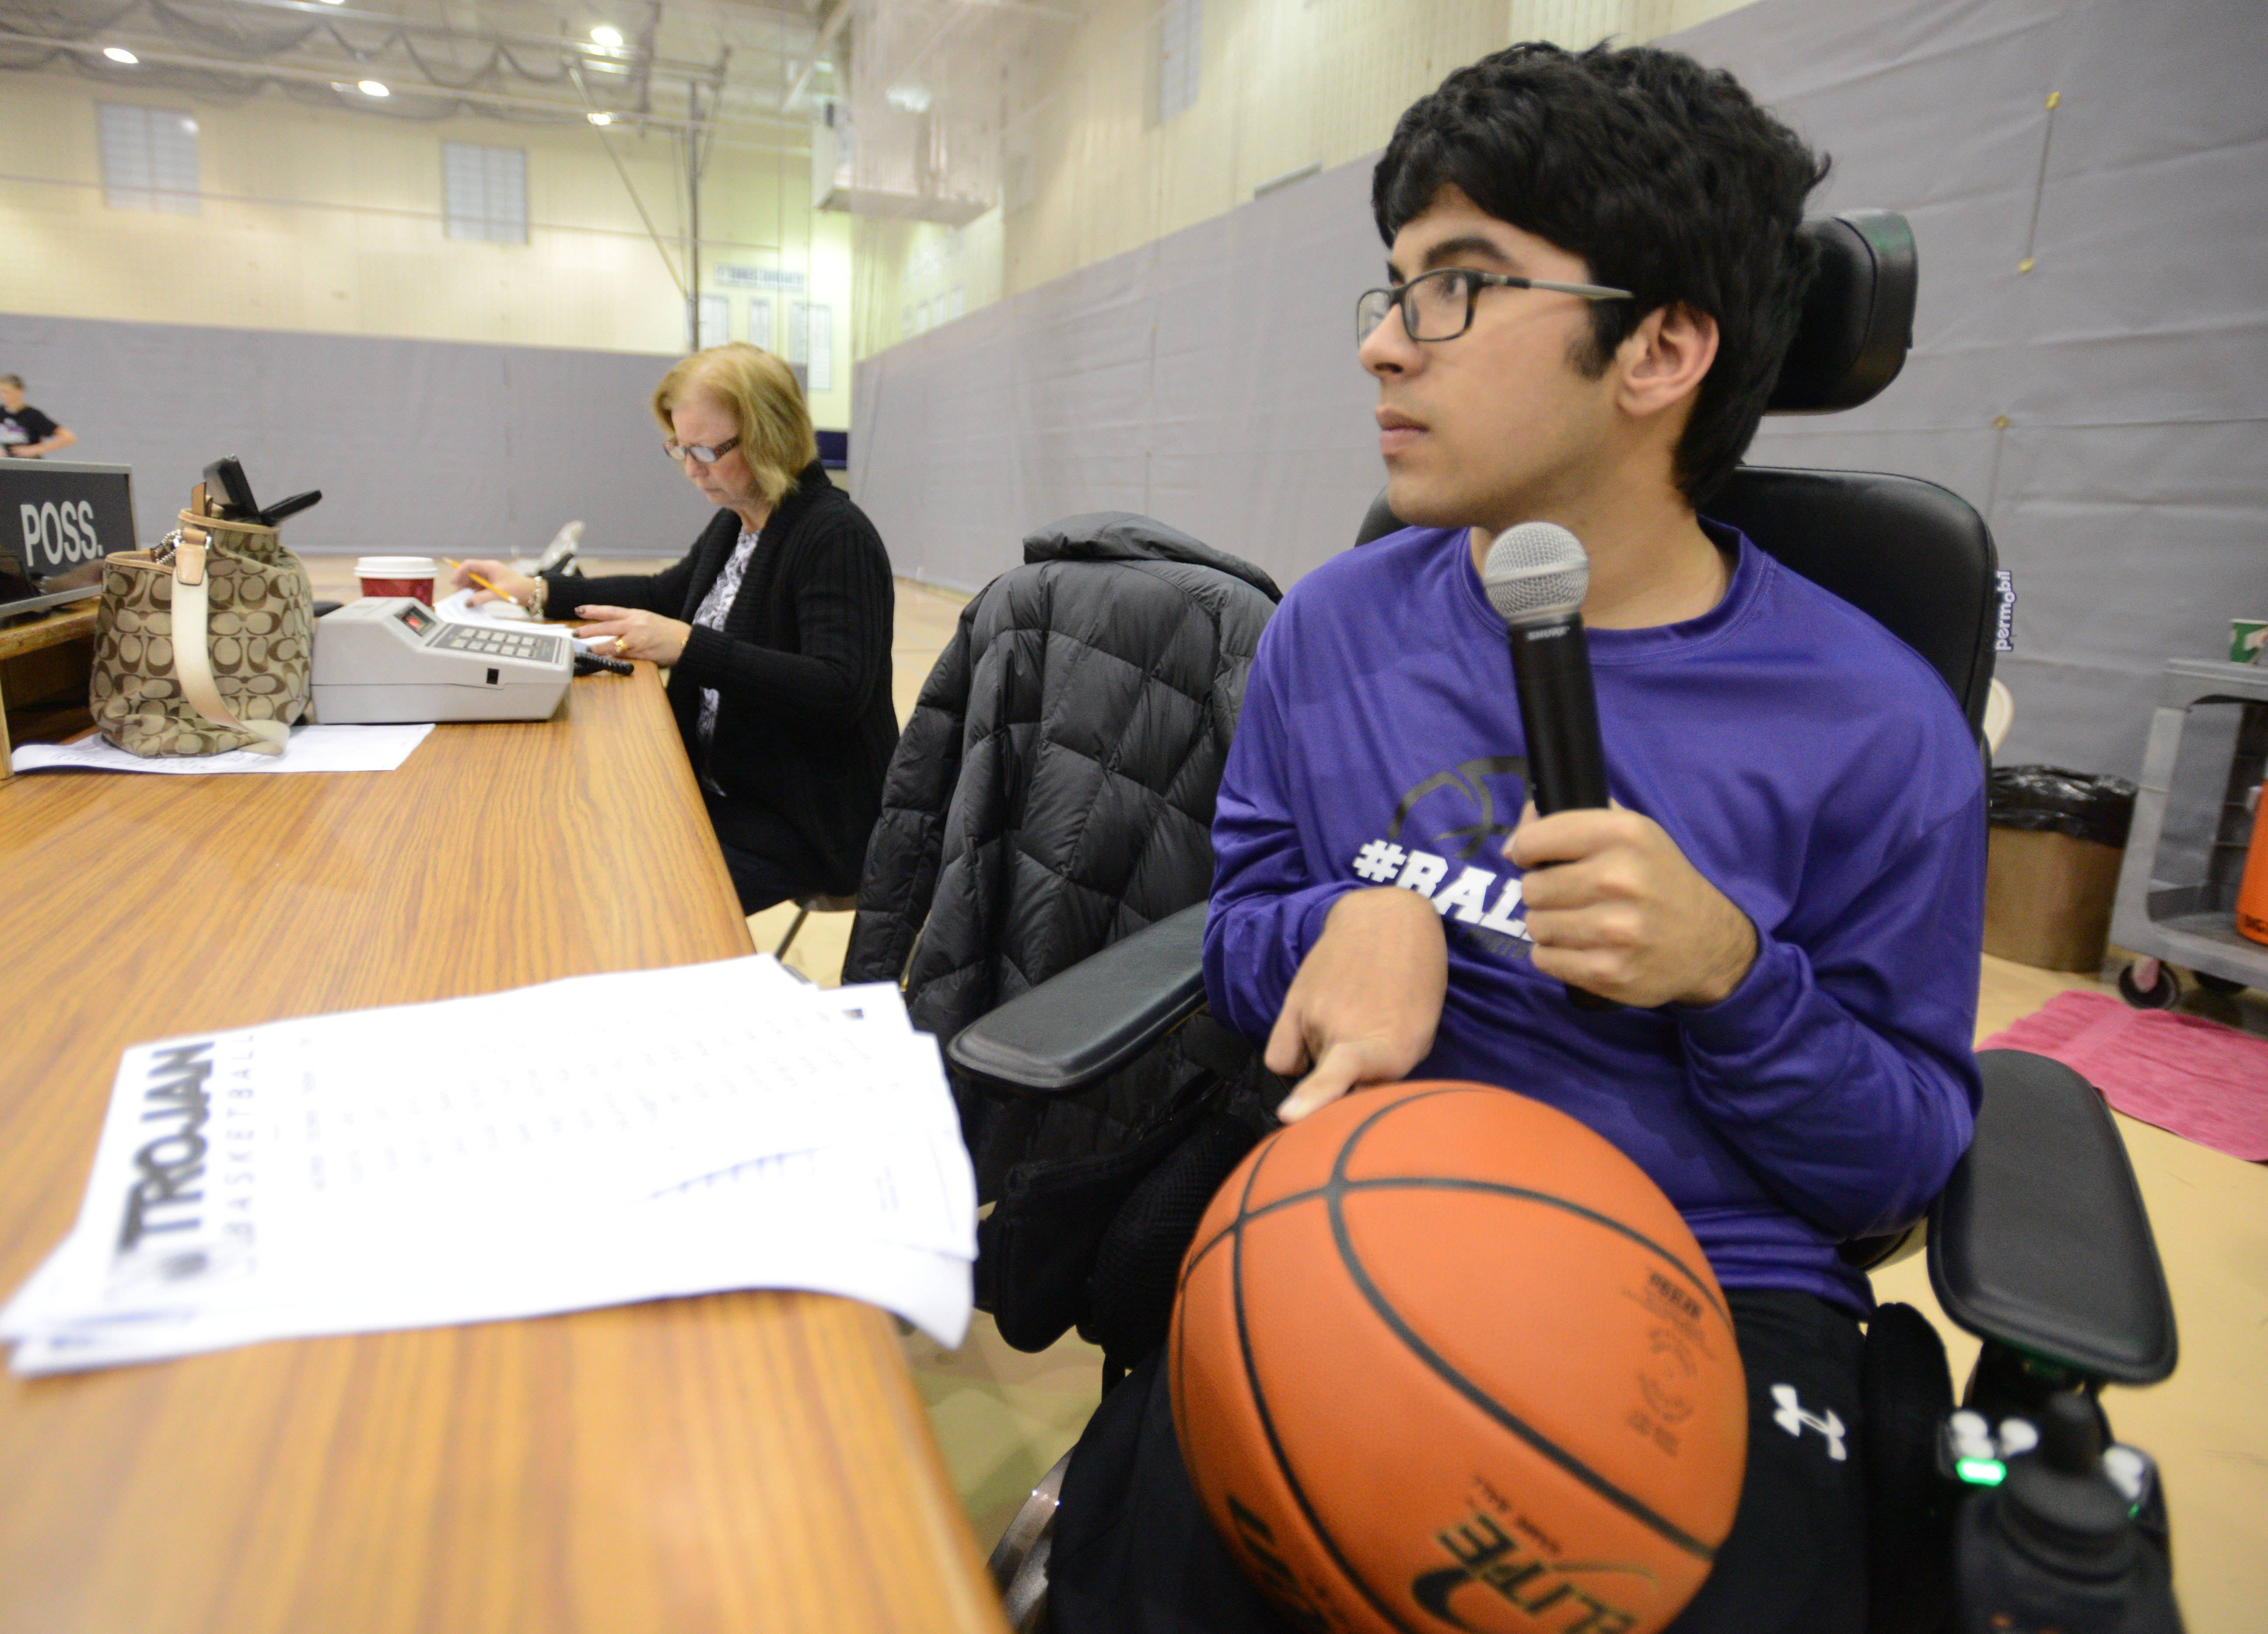 Zain Bando, 15, of Downers Grove, has channeled his love for sports into broadcasting. Along with the Internet-based sports talk radio show he hosts, Zain announces games at Downers Grove North High School.